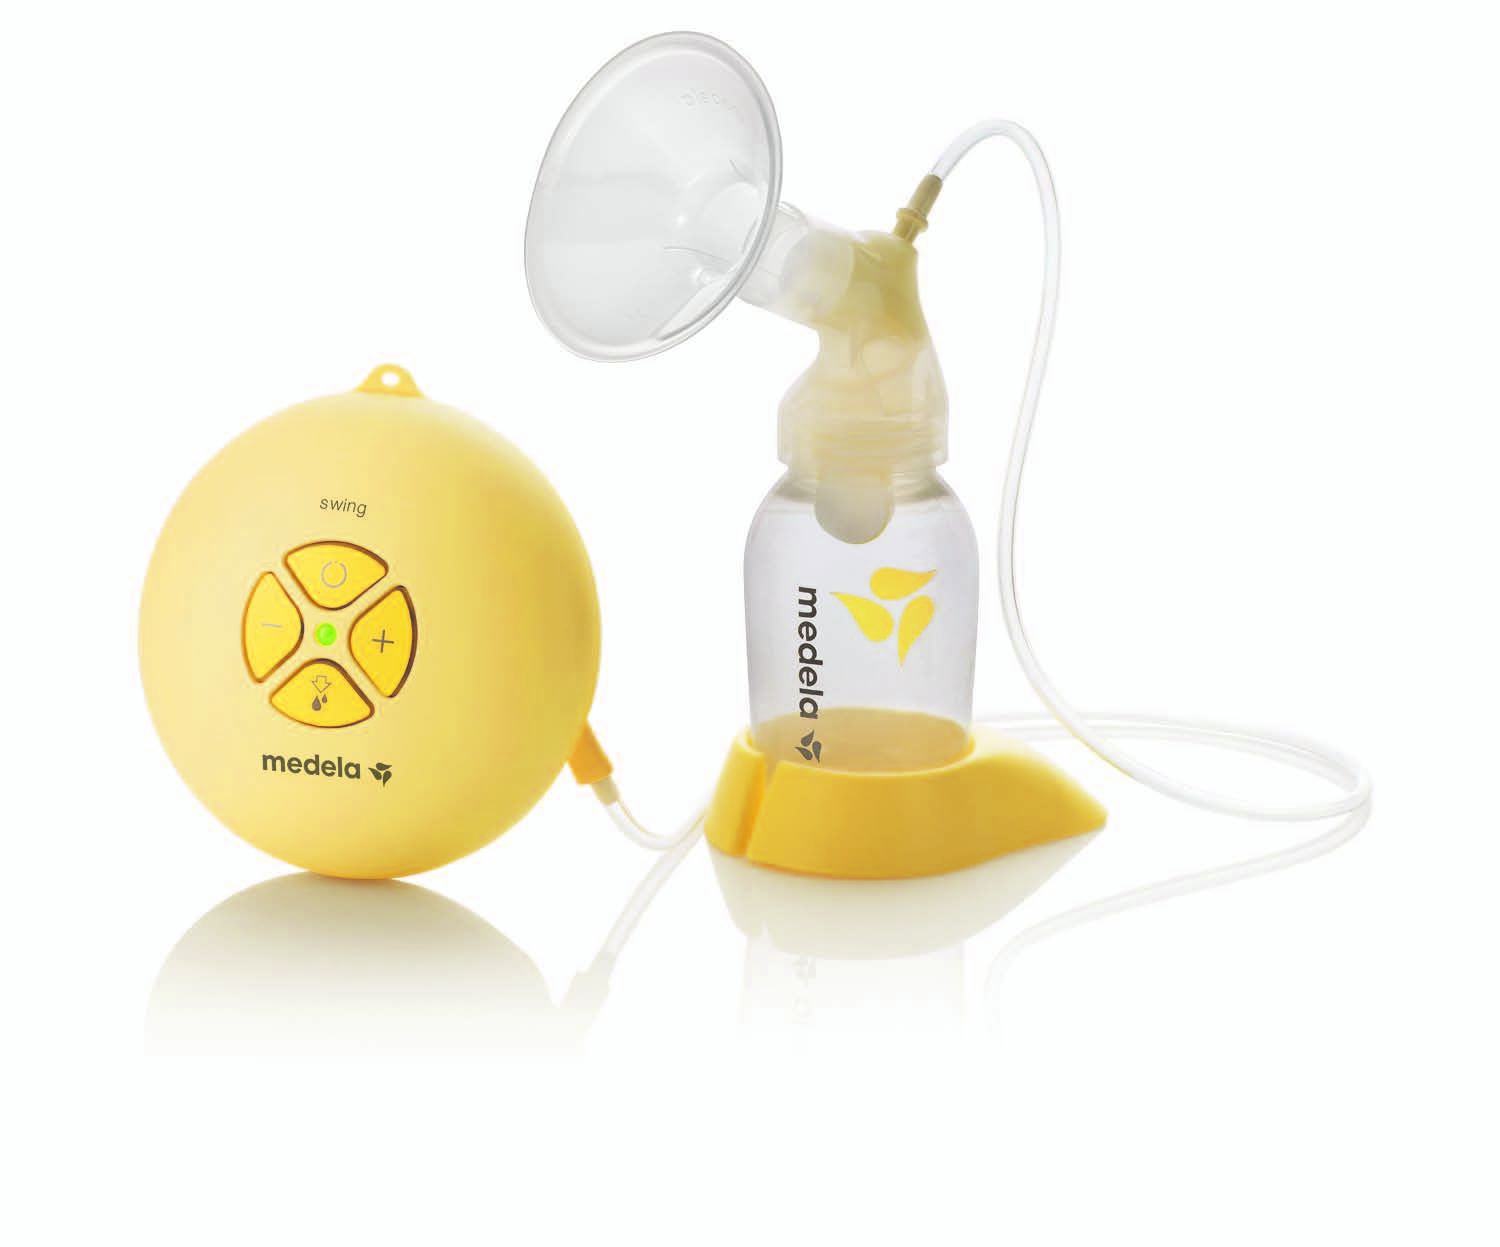 Medela Swing Breast Pump 67050 Free Shipping Soft Cup Feeder An Everyday Single Electric With Advanced 2 Phase Expression Technology From